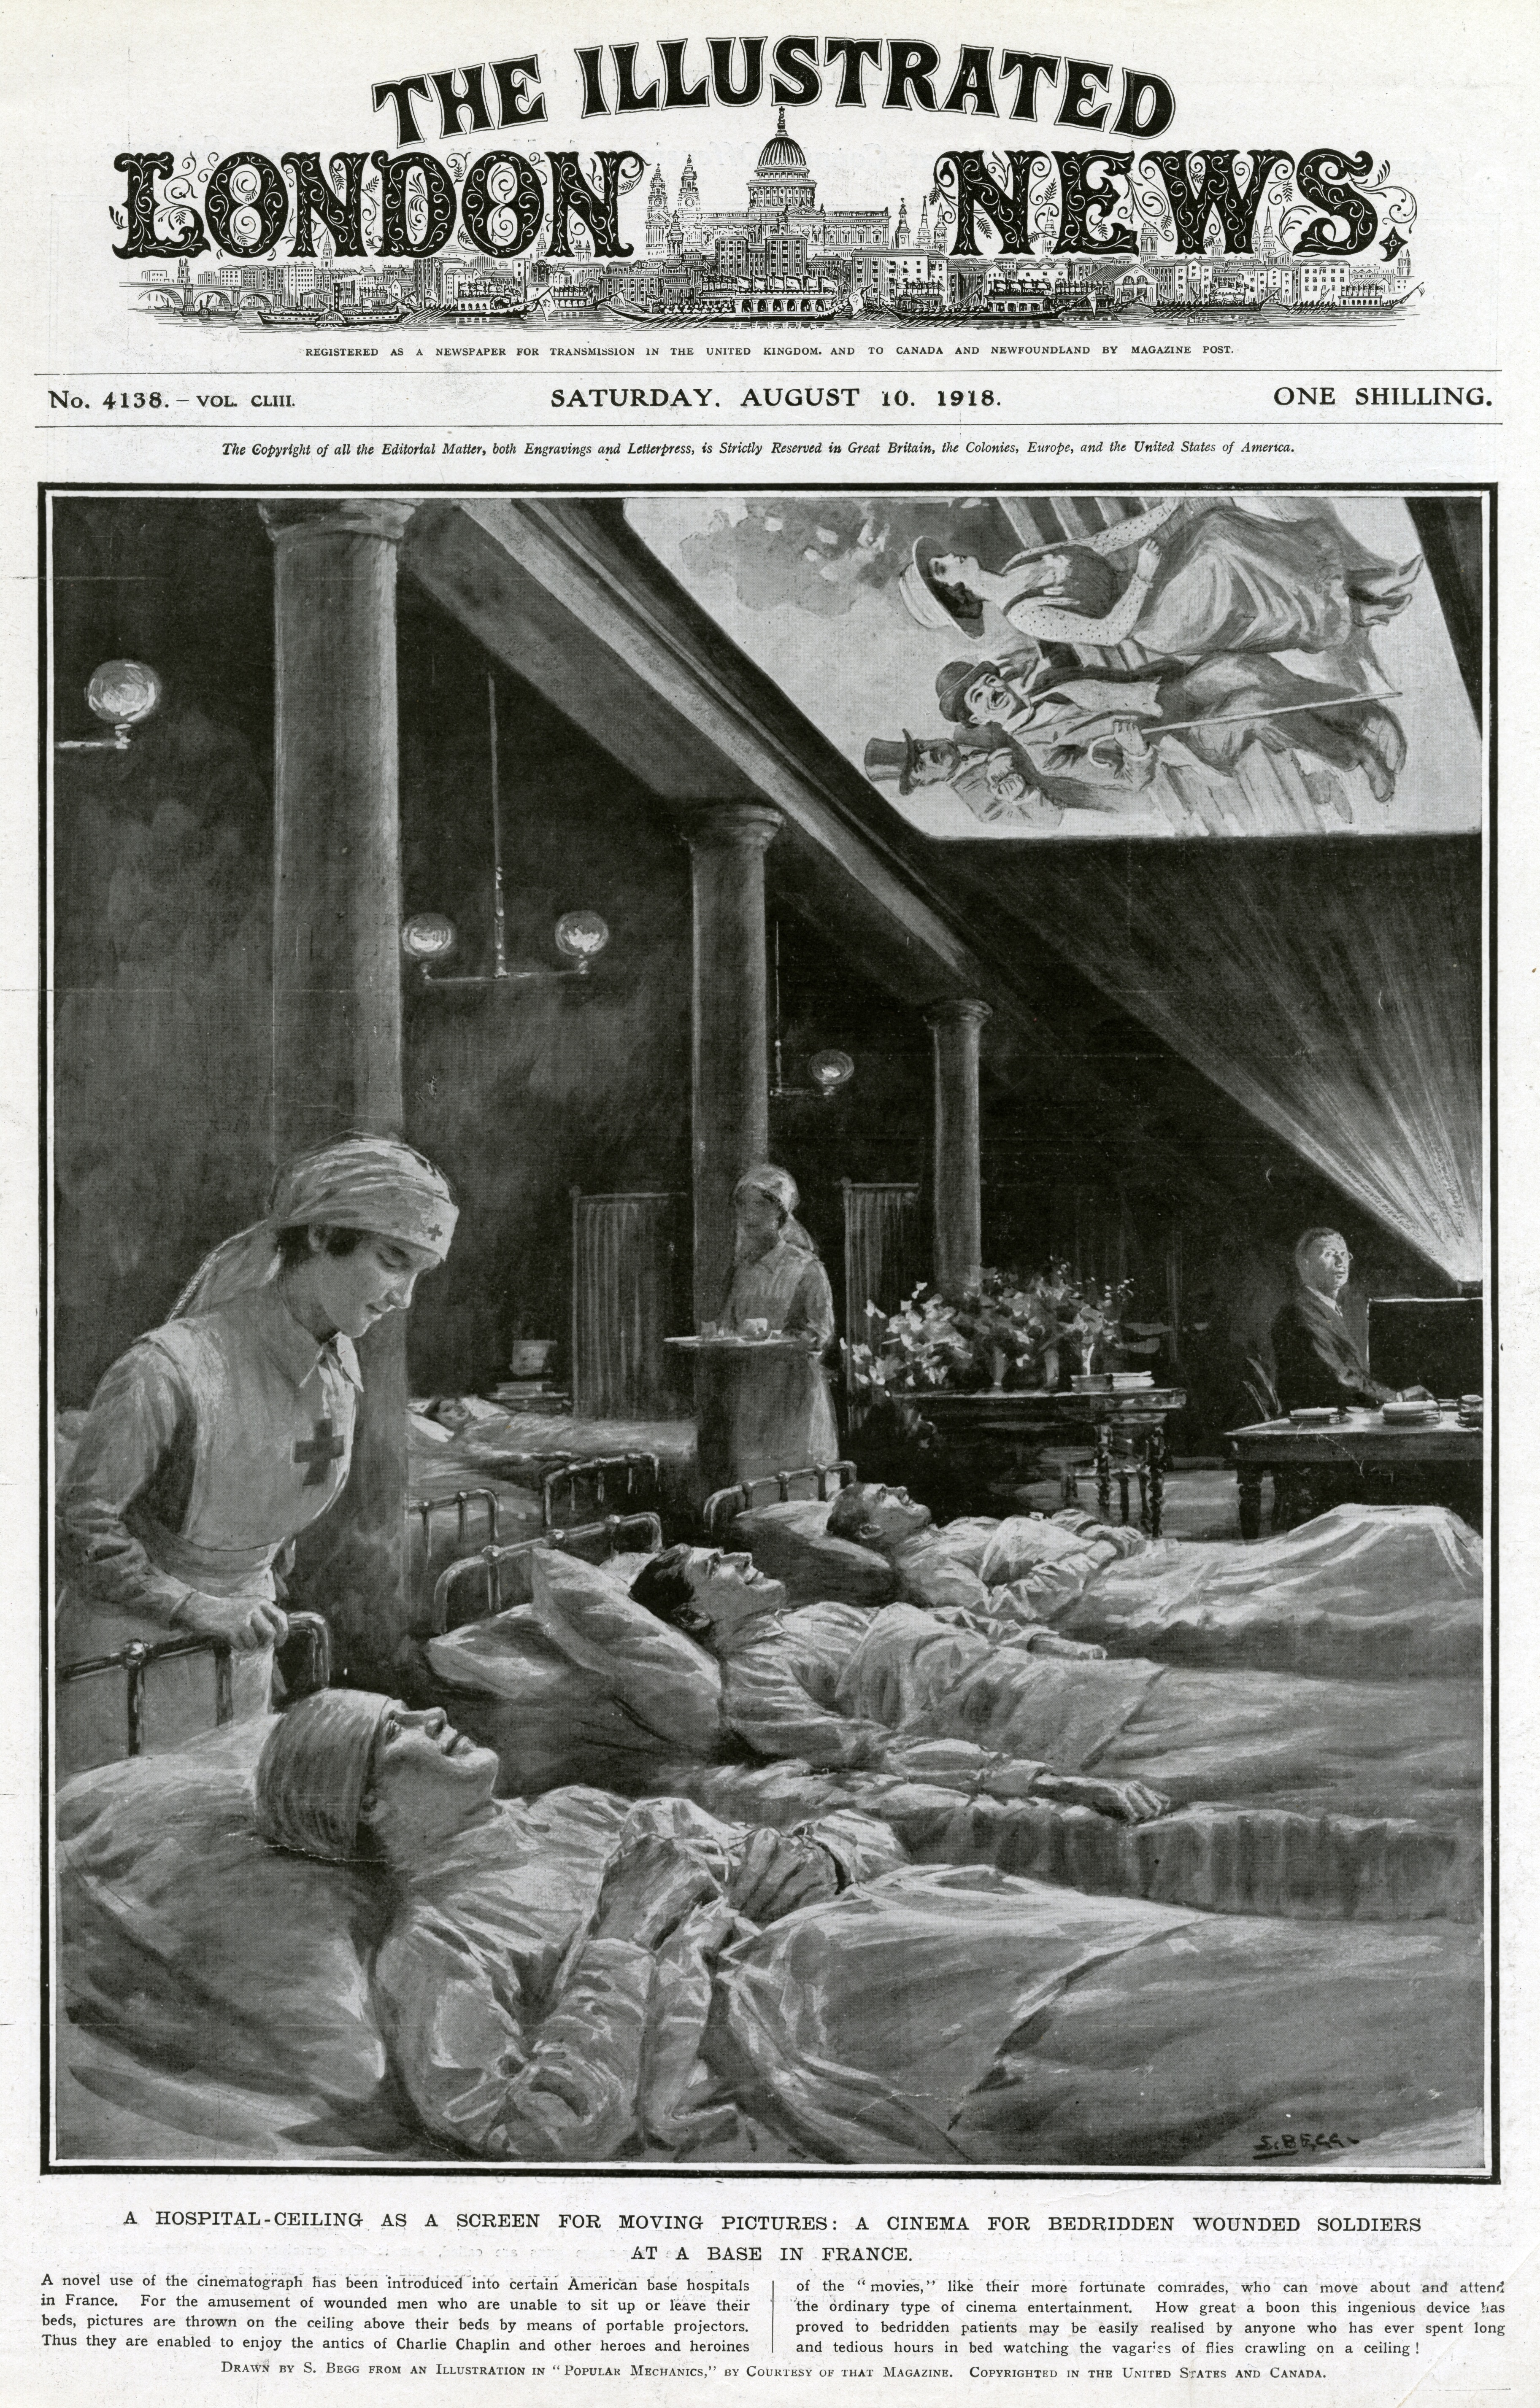 """A hospital ceiling as a screen for moving pictures,"" The Illustrated London News, August 10, 1918, front cover."